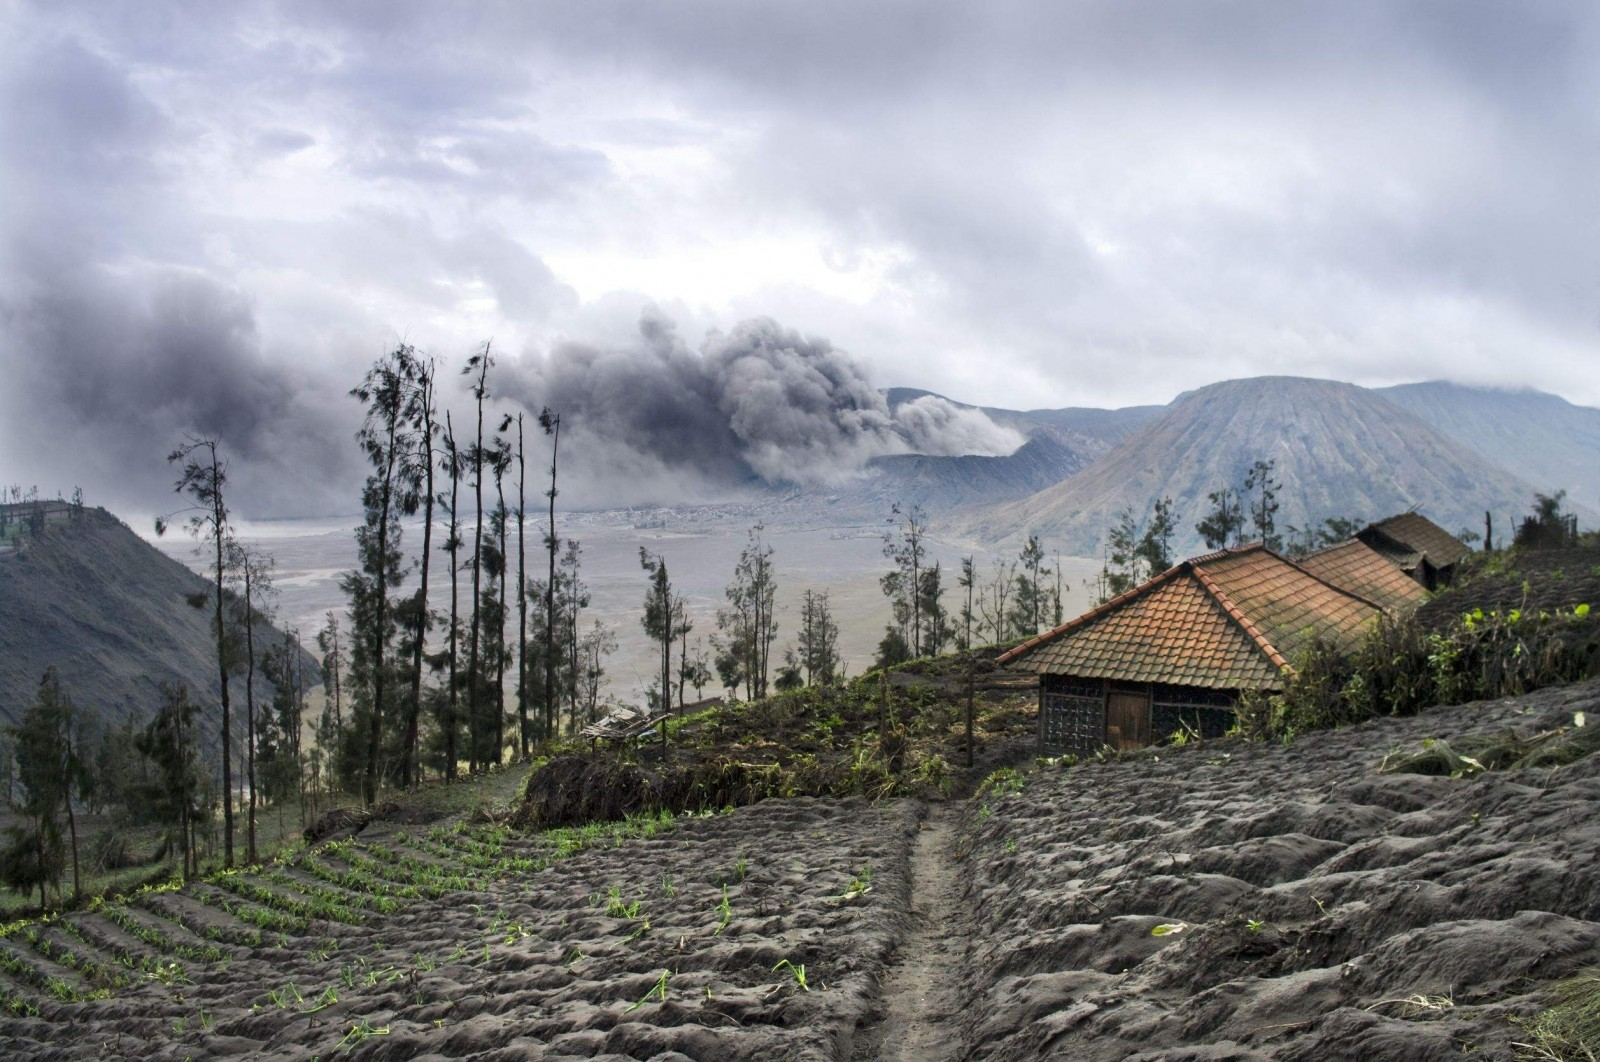 mount-bromo-volcano-java-house-on-a-foreground-1600x1062